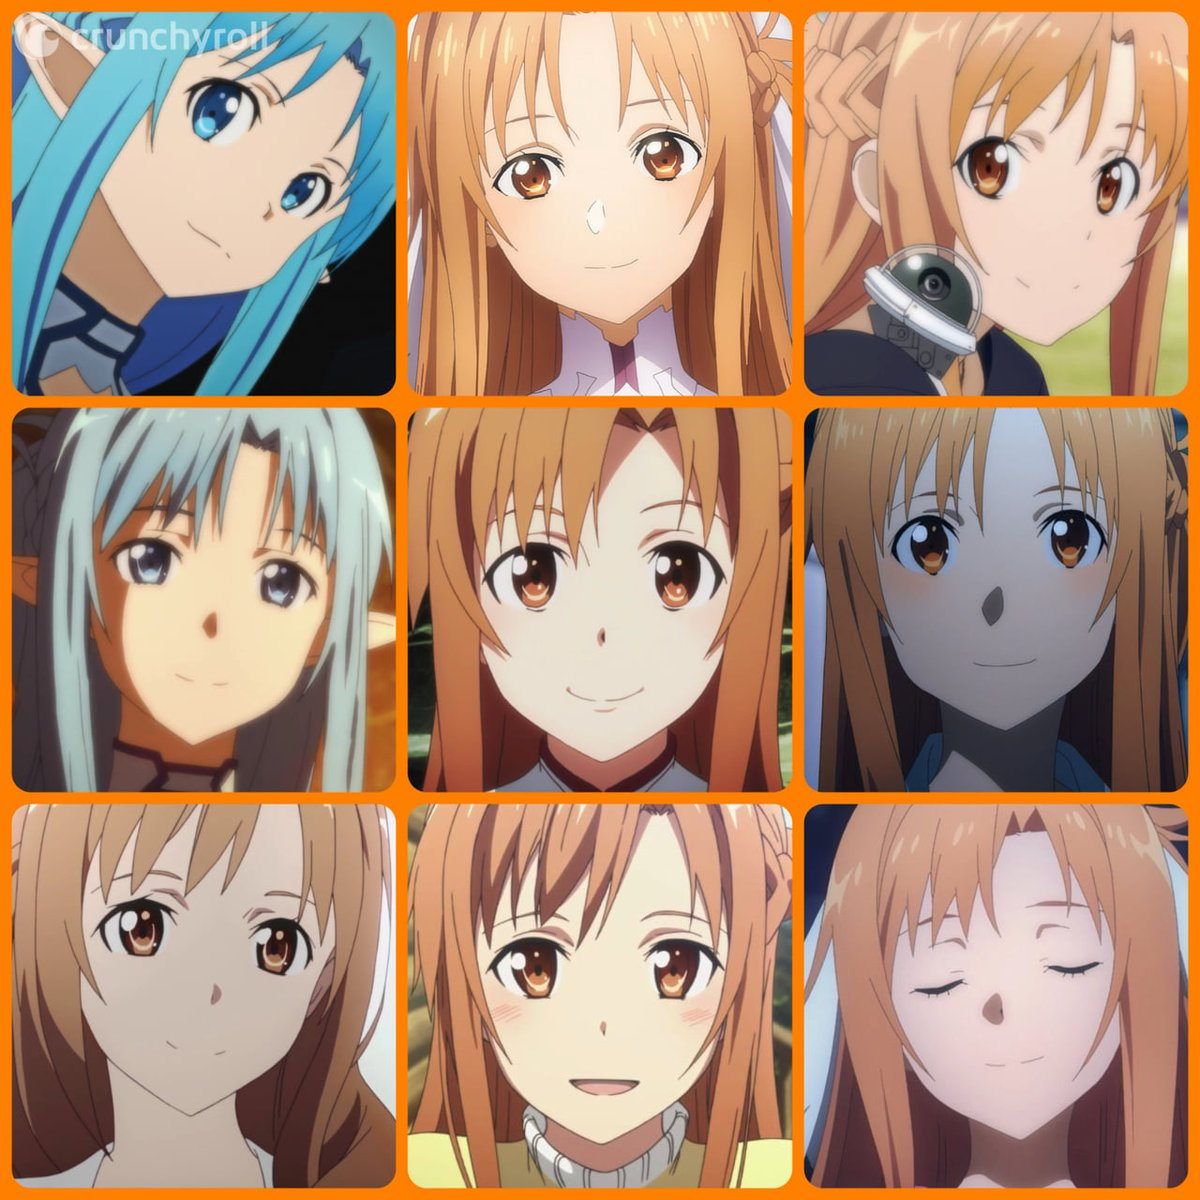 (9/30) Happy Birthday Asuna and Kuroyukihime 🎉